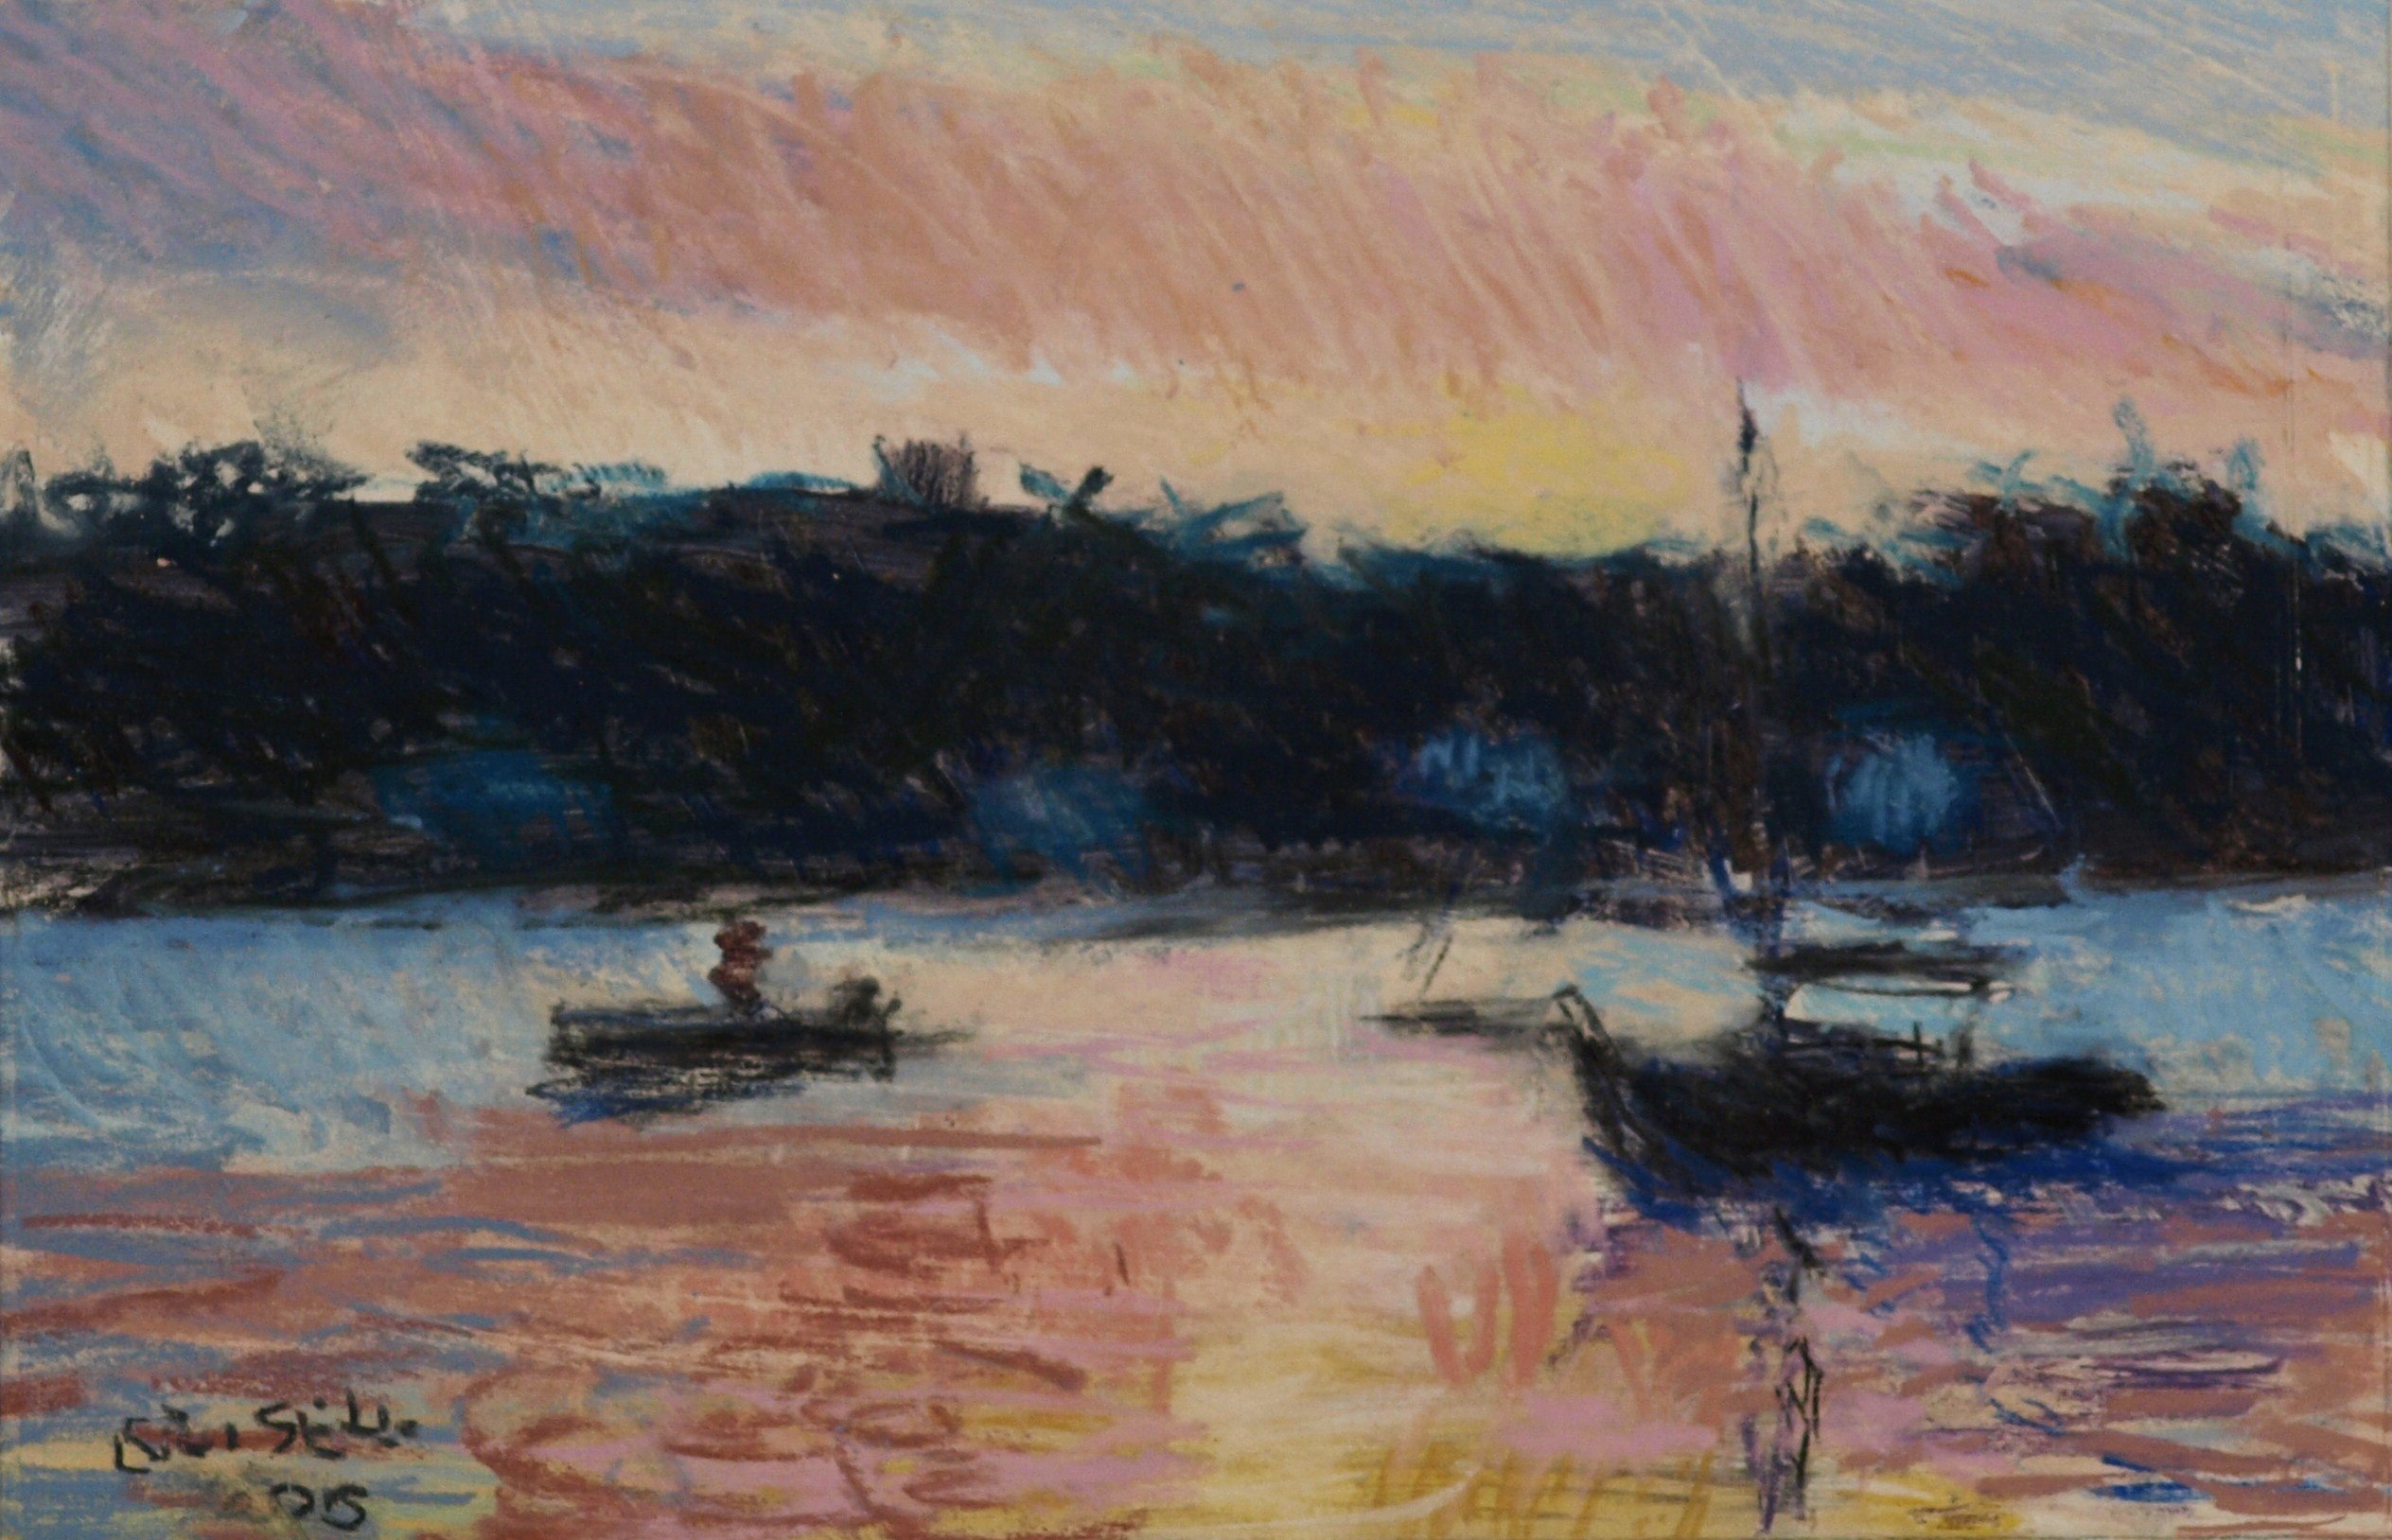 Mystic River Sunset, Matted Pastel on Paper, 7 x 10 Inches, by Susan Grisell, $250